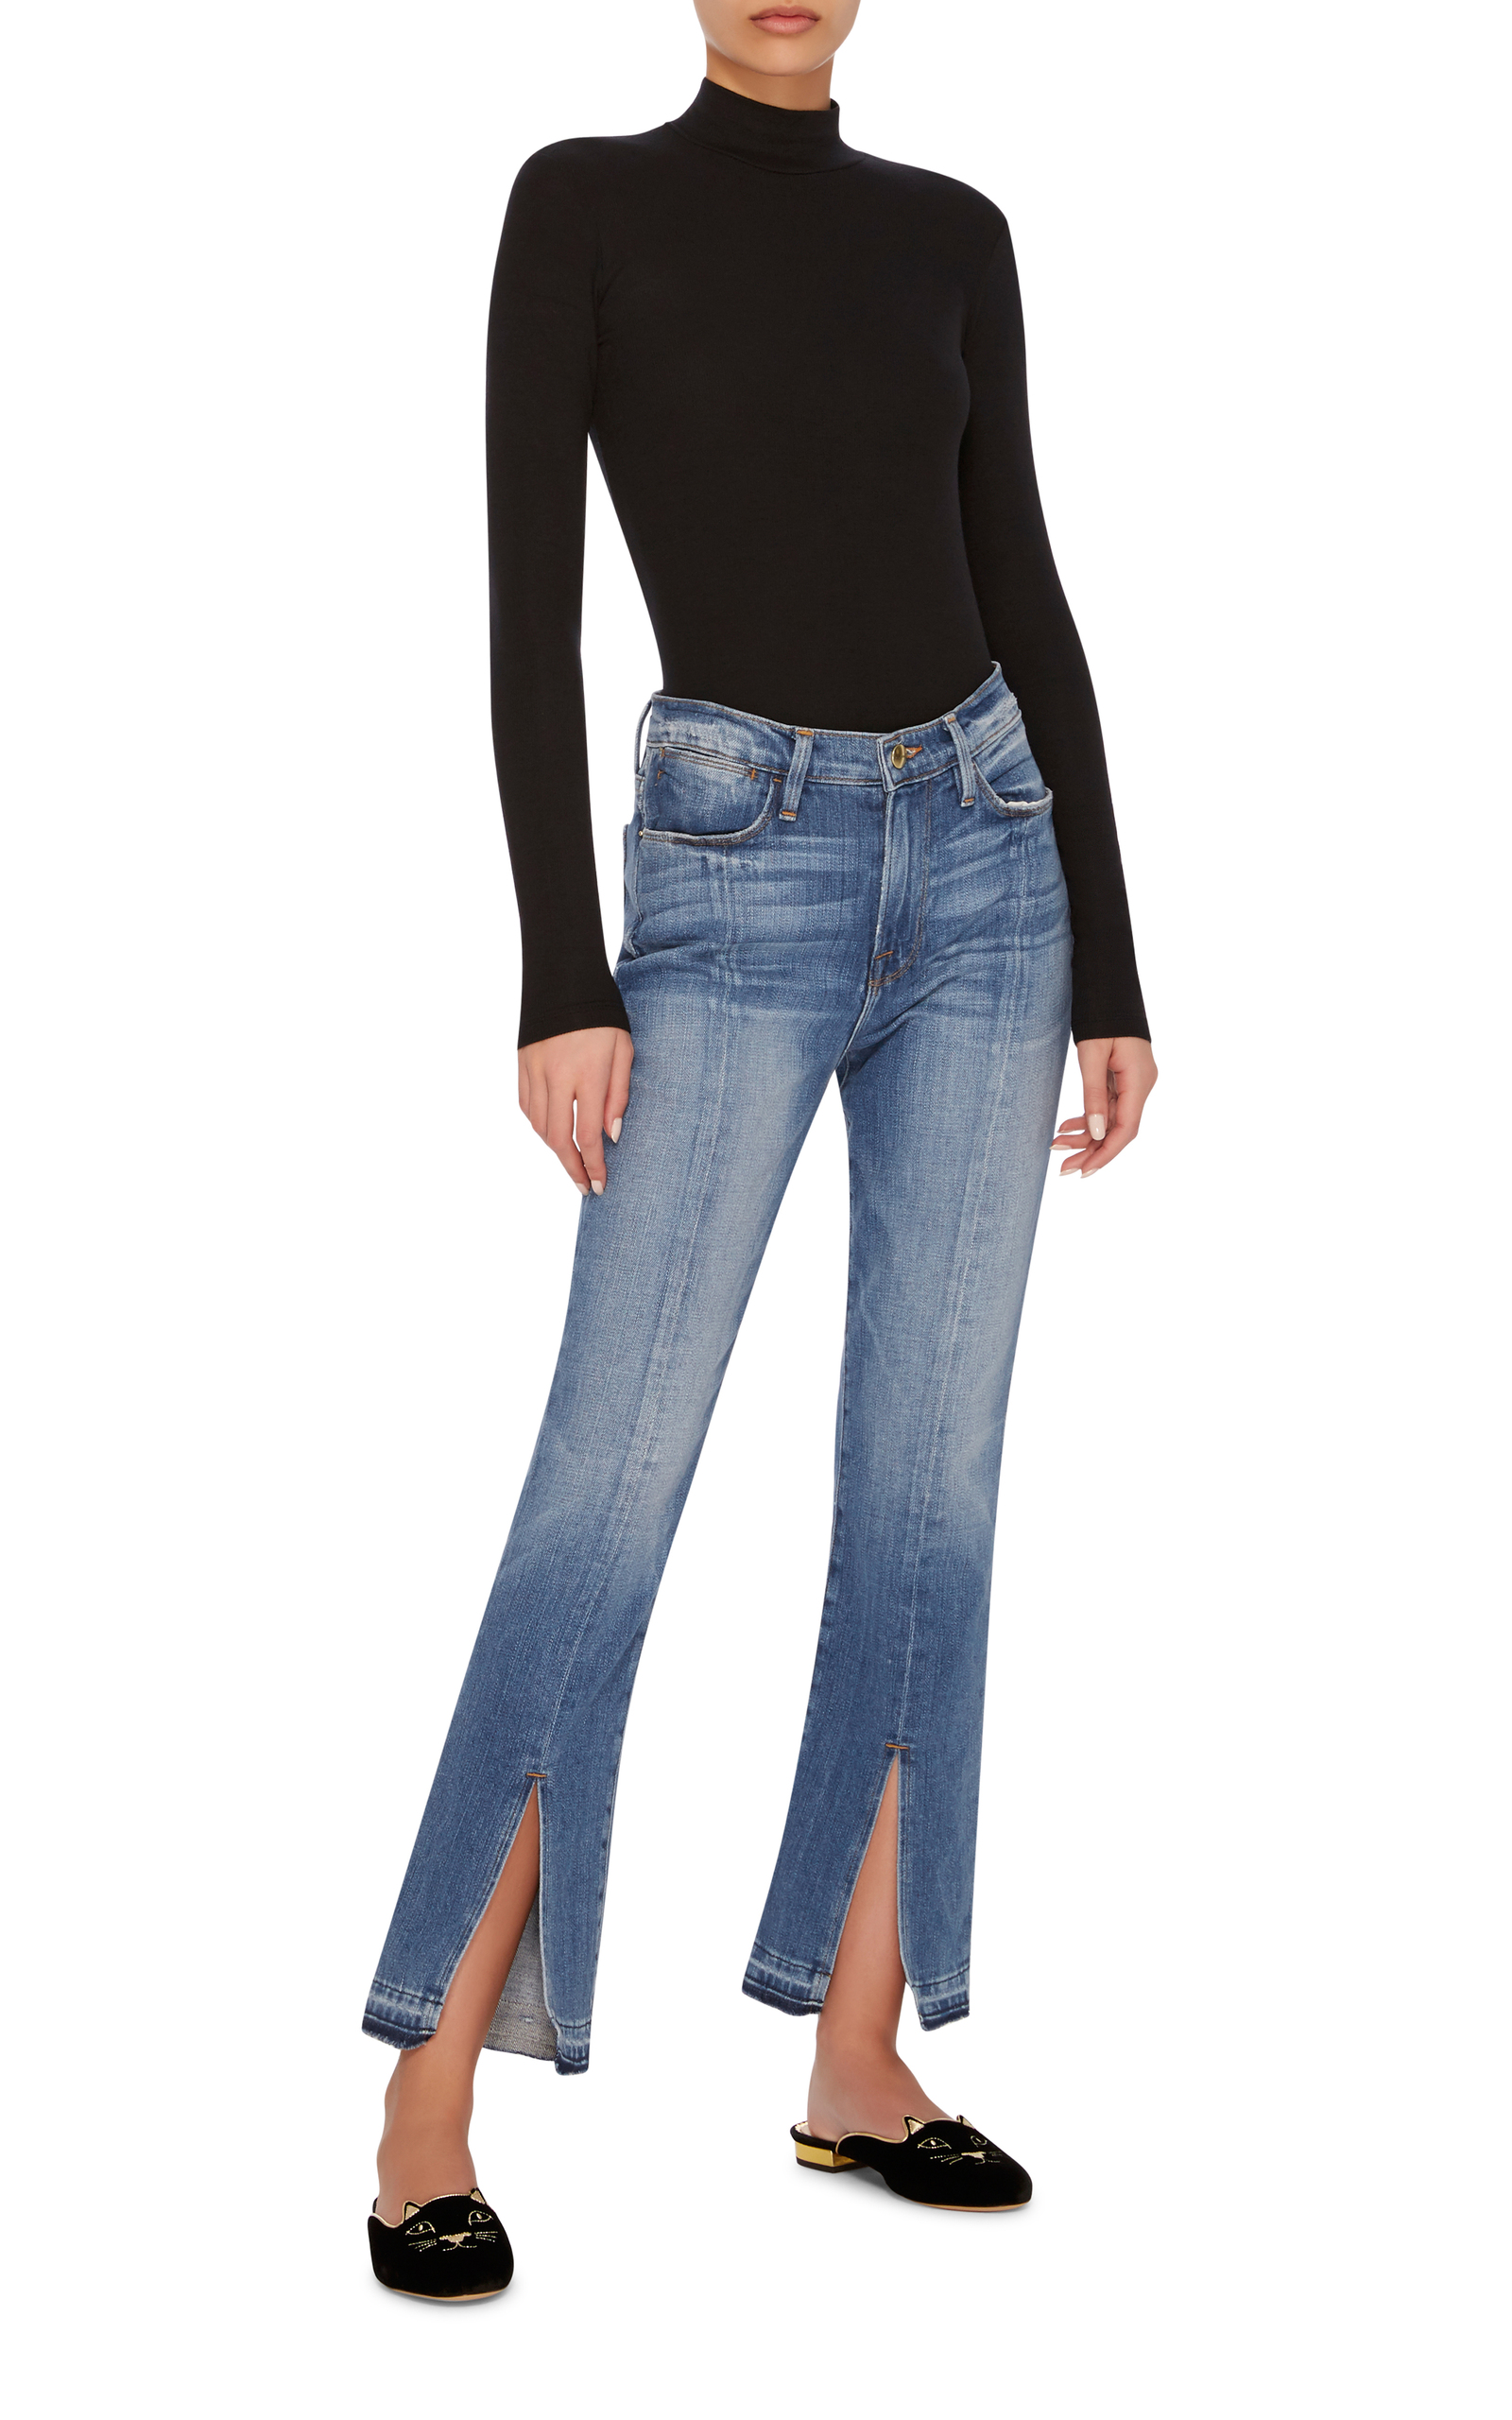 le nouveau jeans Frame Denim Clearance Get To Buy Buy Cheap Visit Recommend Discount Marketable Sale Many Kinds Of Udl4N